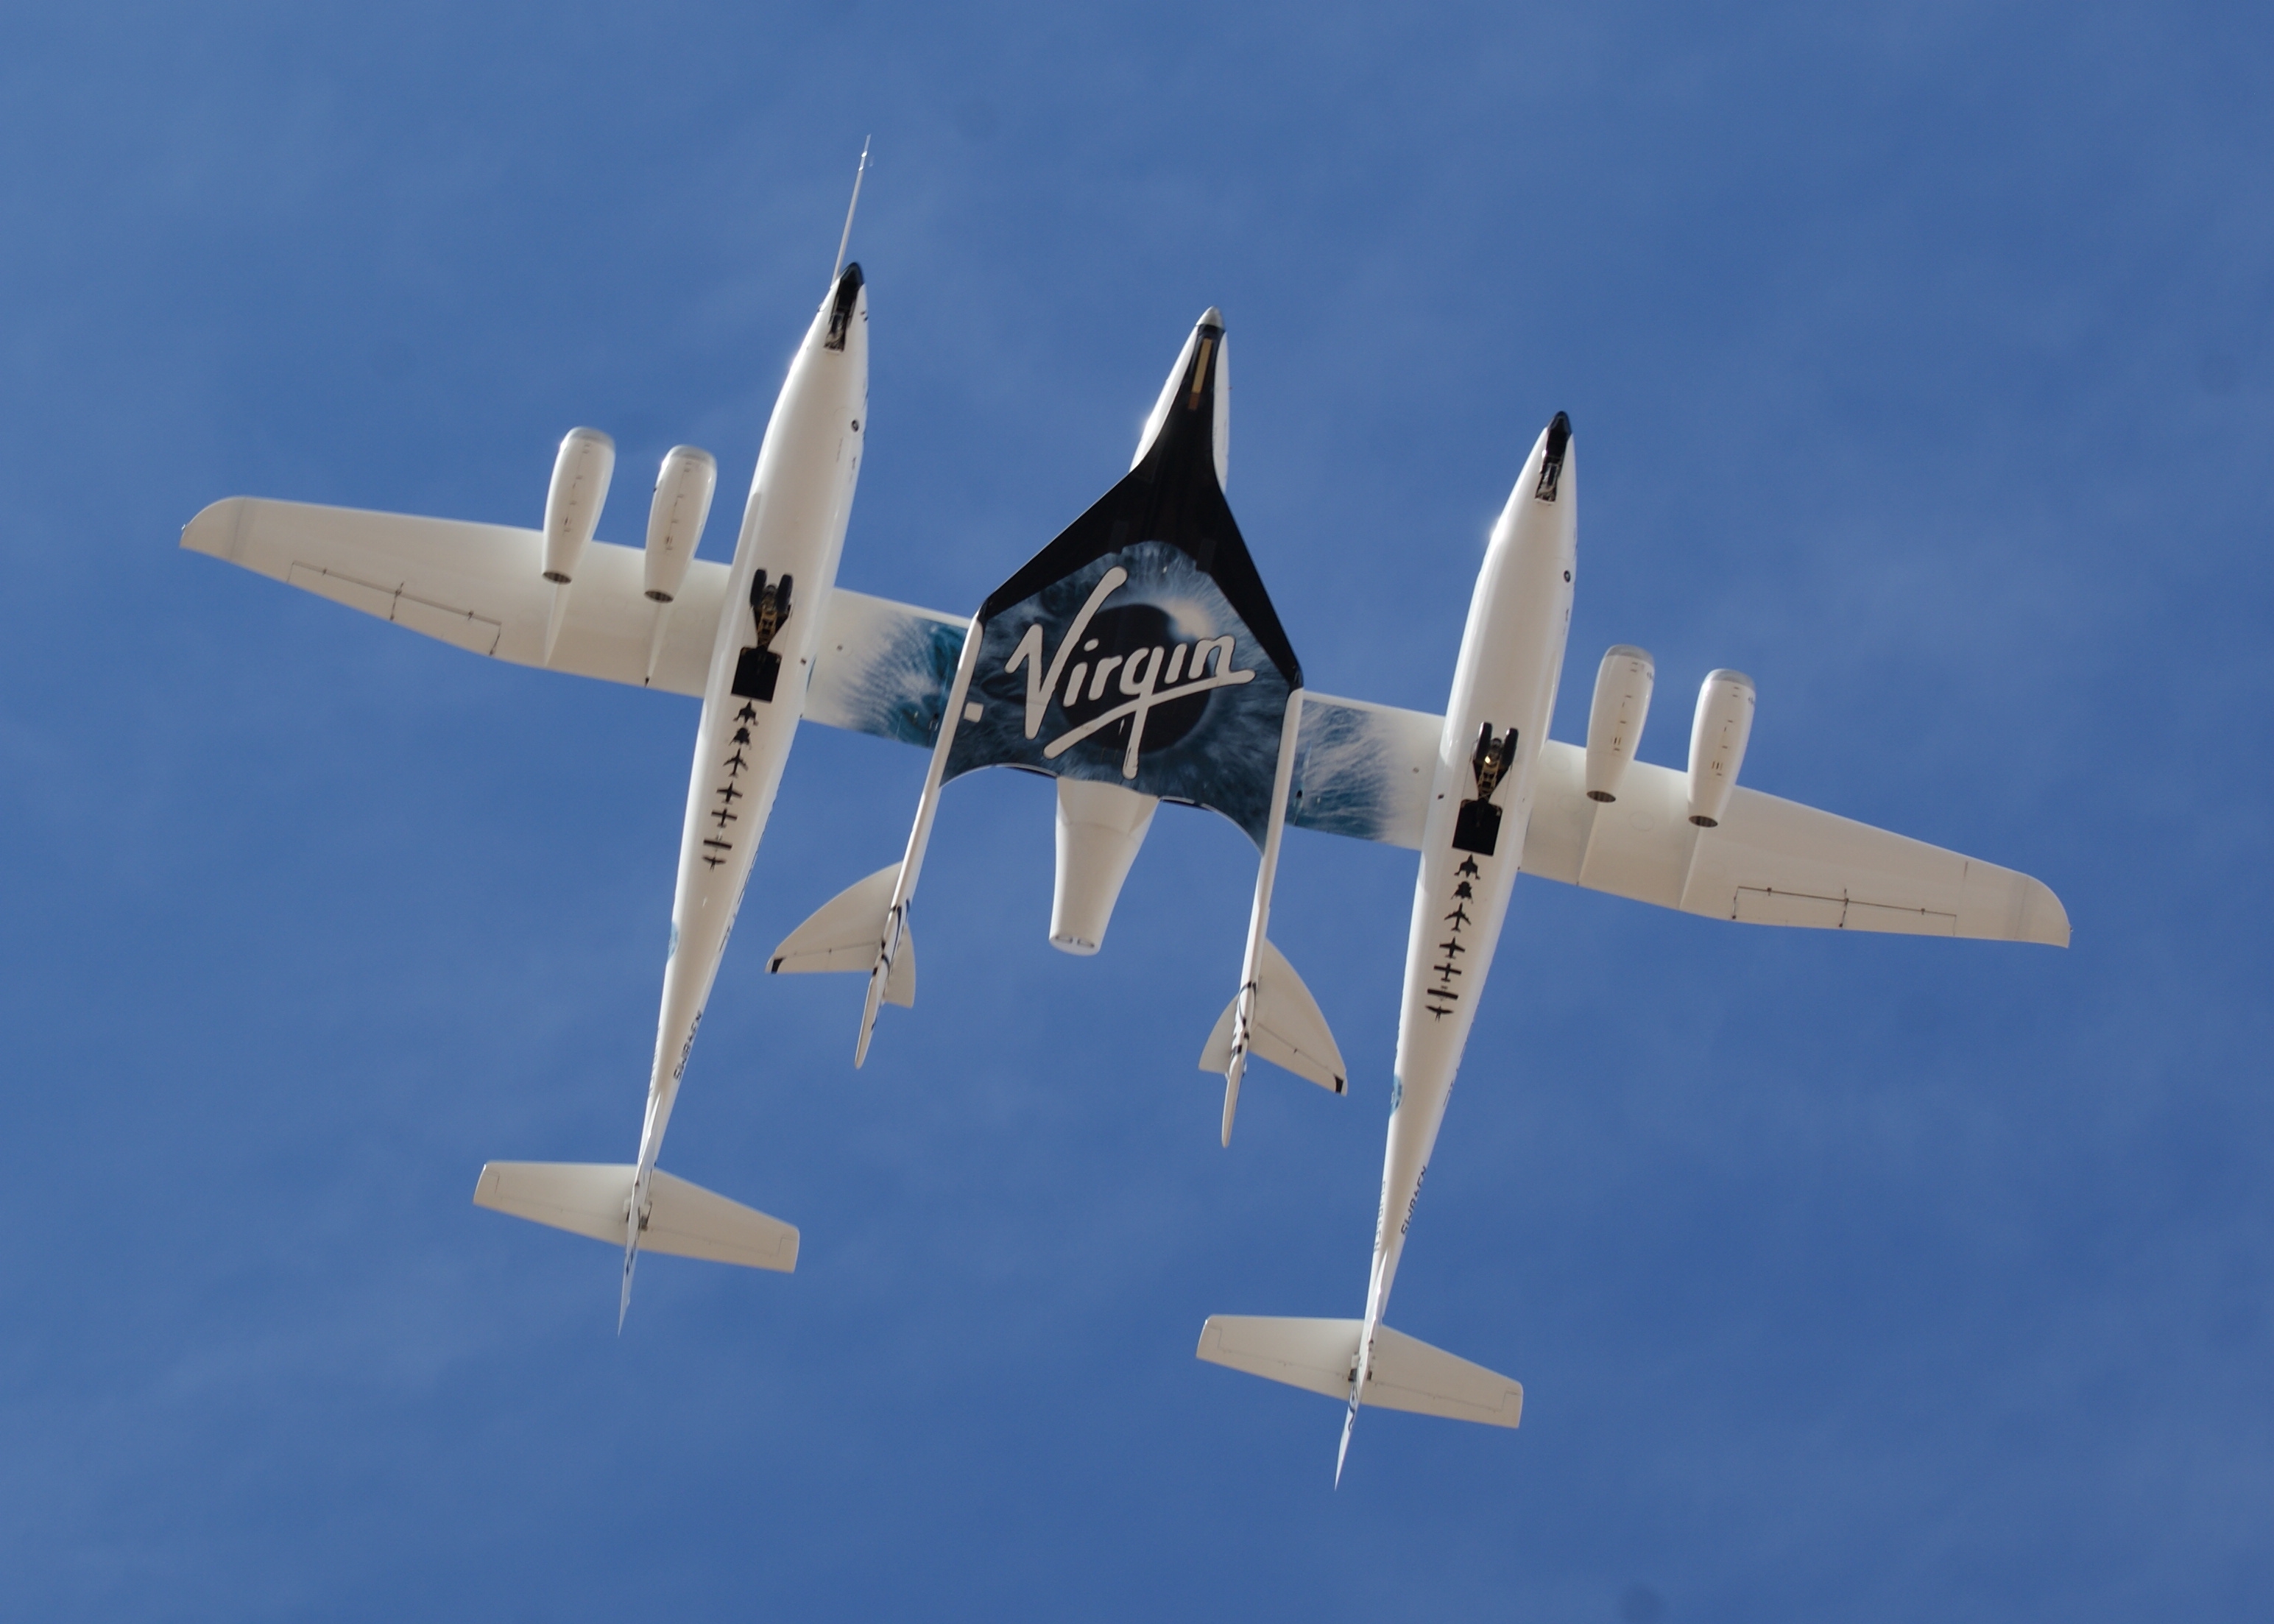 http://upload.wikimedia.org/wikipedia/commons/4/41/White_Knight_Two_and_SpaceShipTwo_from_directly_below.jpg